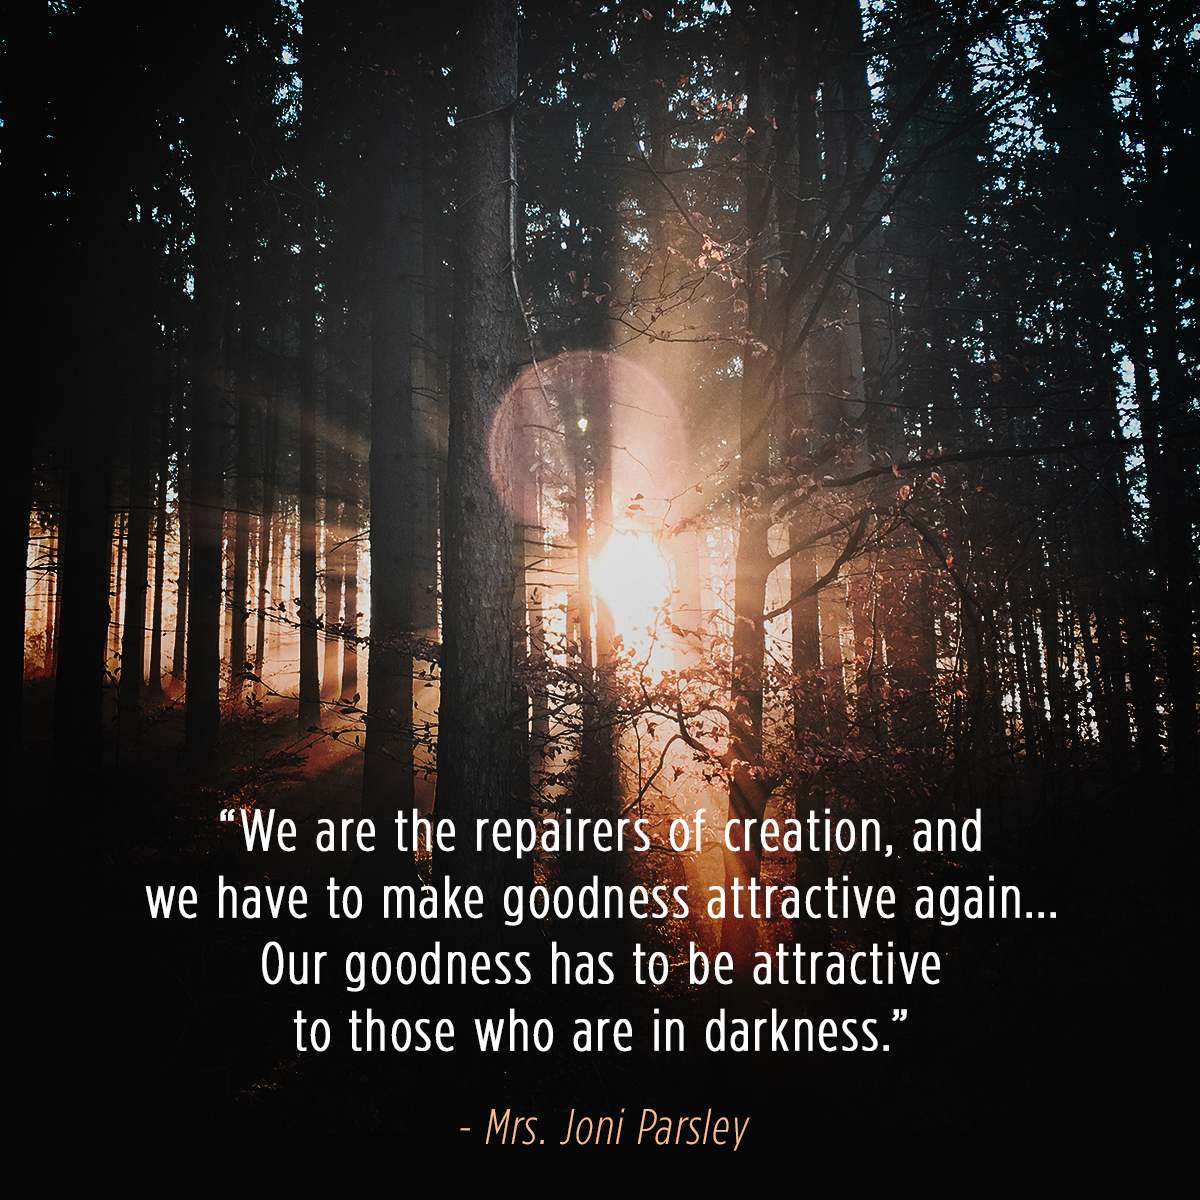 """We are the repairers of creation, and we have to make goodness attractive again …Our goodness has to be attractive to those who are in darkness."" – Mrs. Joni Parsley"